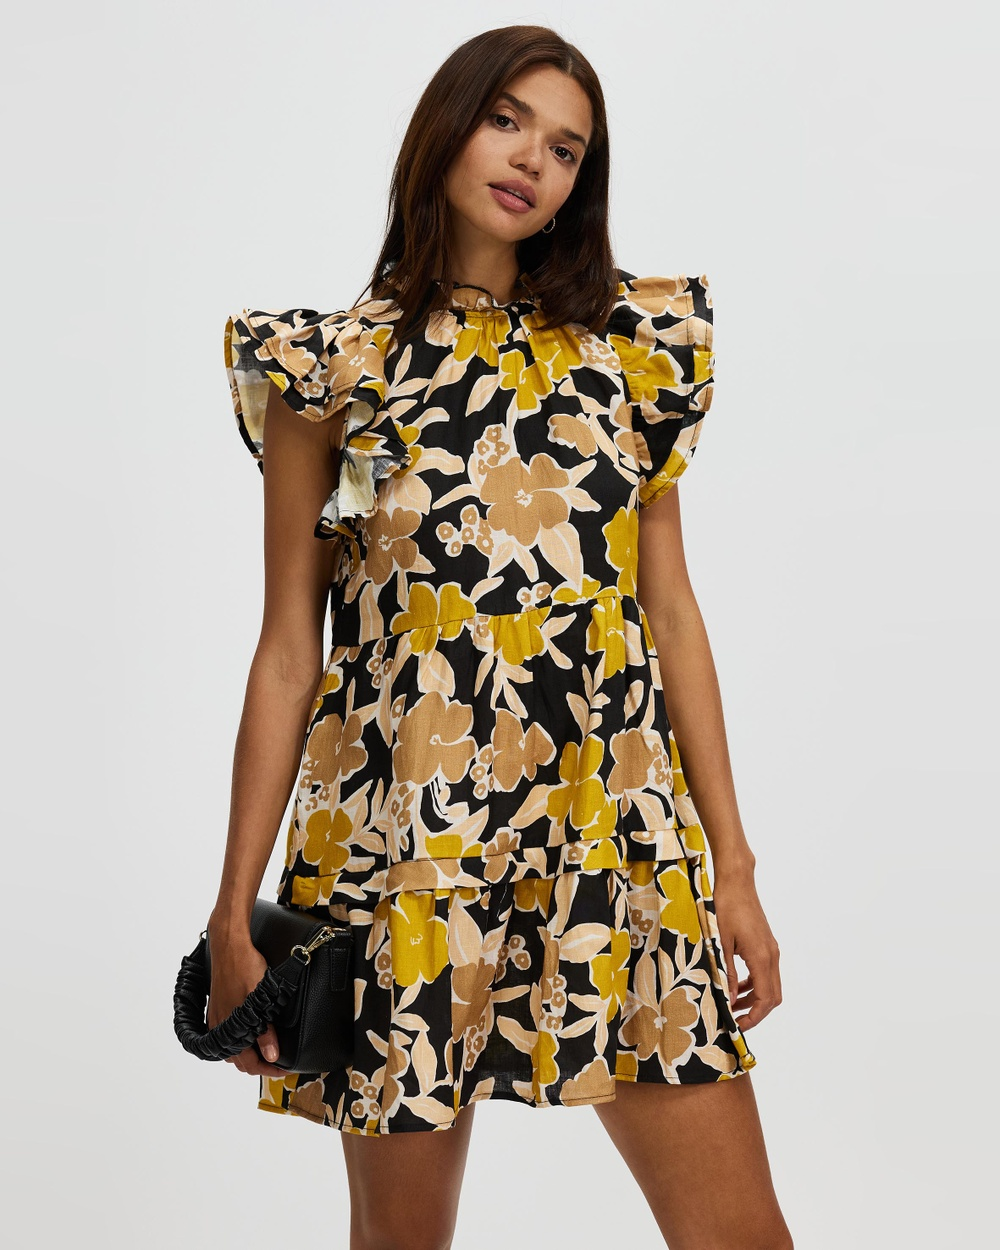 AERE Frill Sleeve Dress Printed Dresses Garden Party